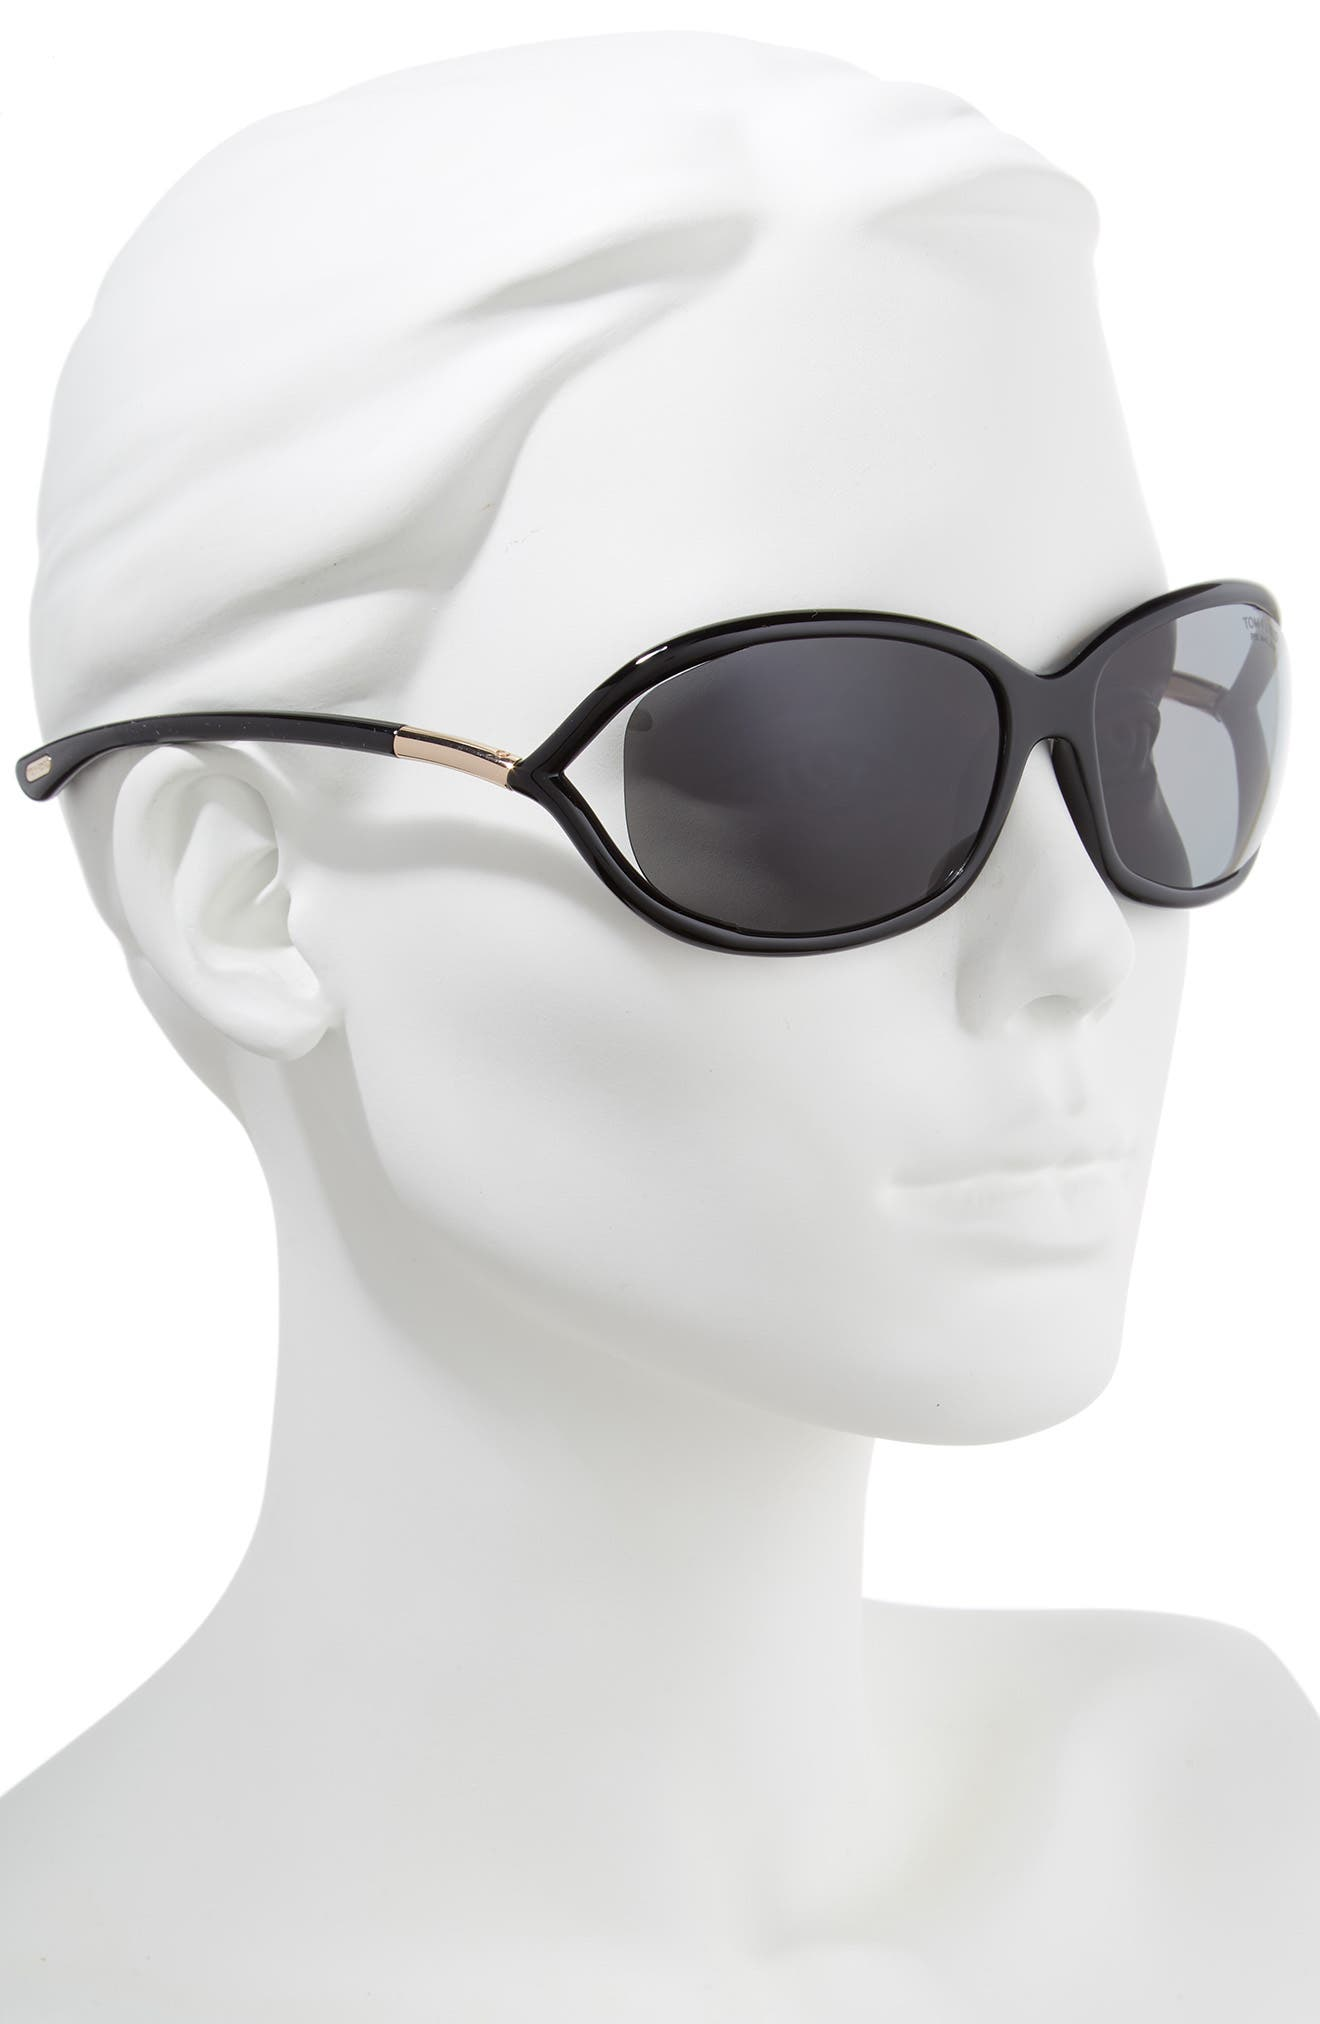 479869a54626 Tom Ford Accessories | Nordstrom